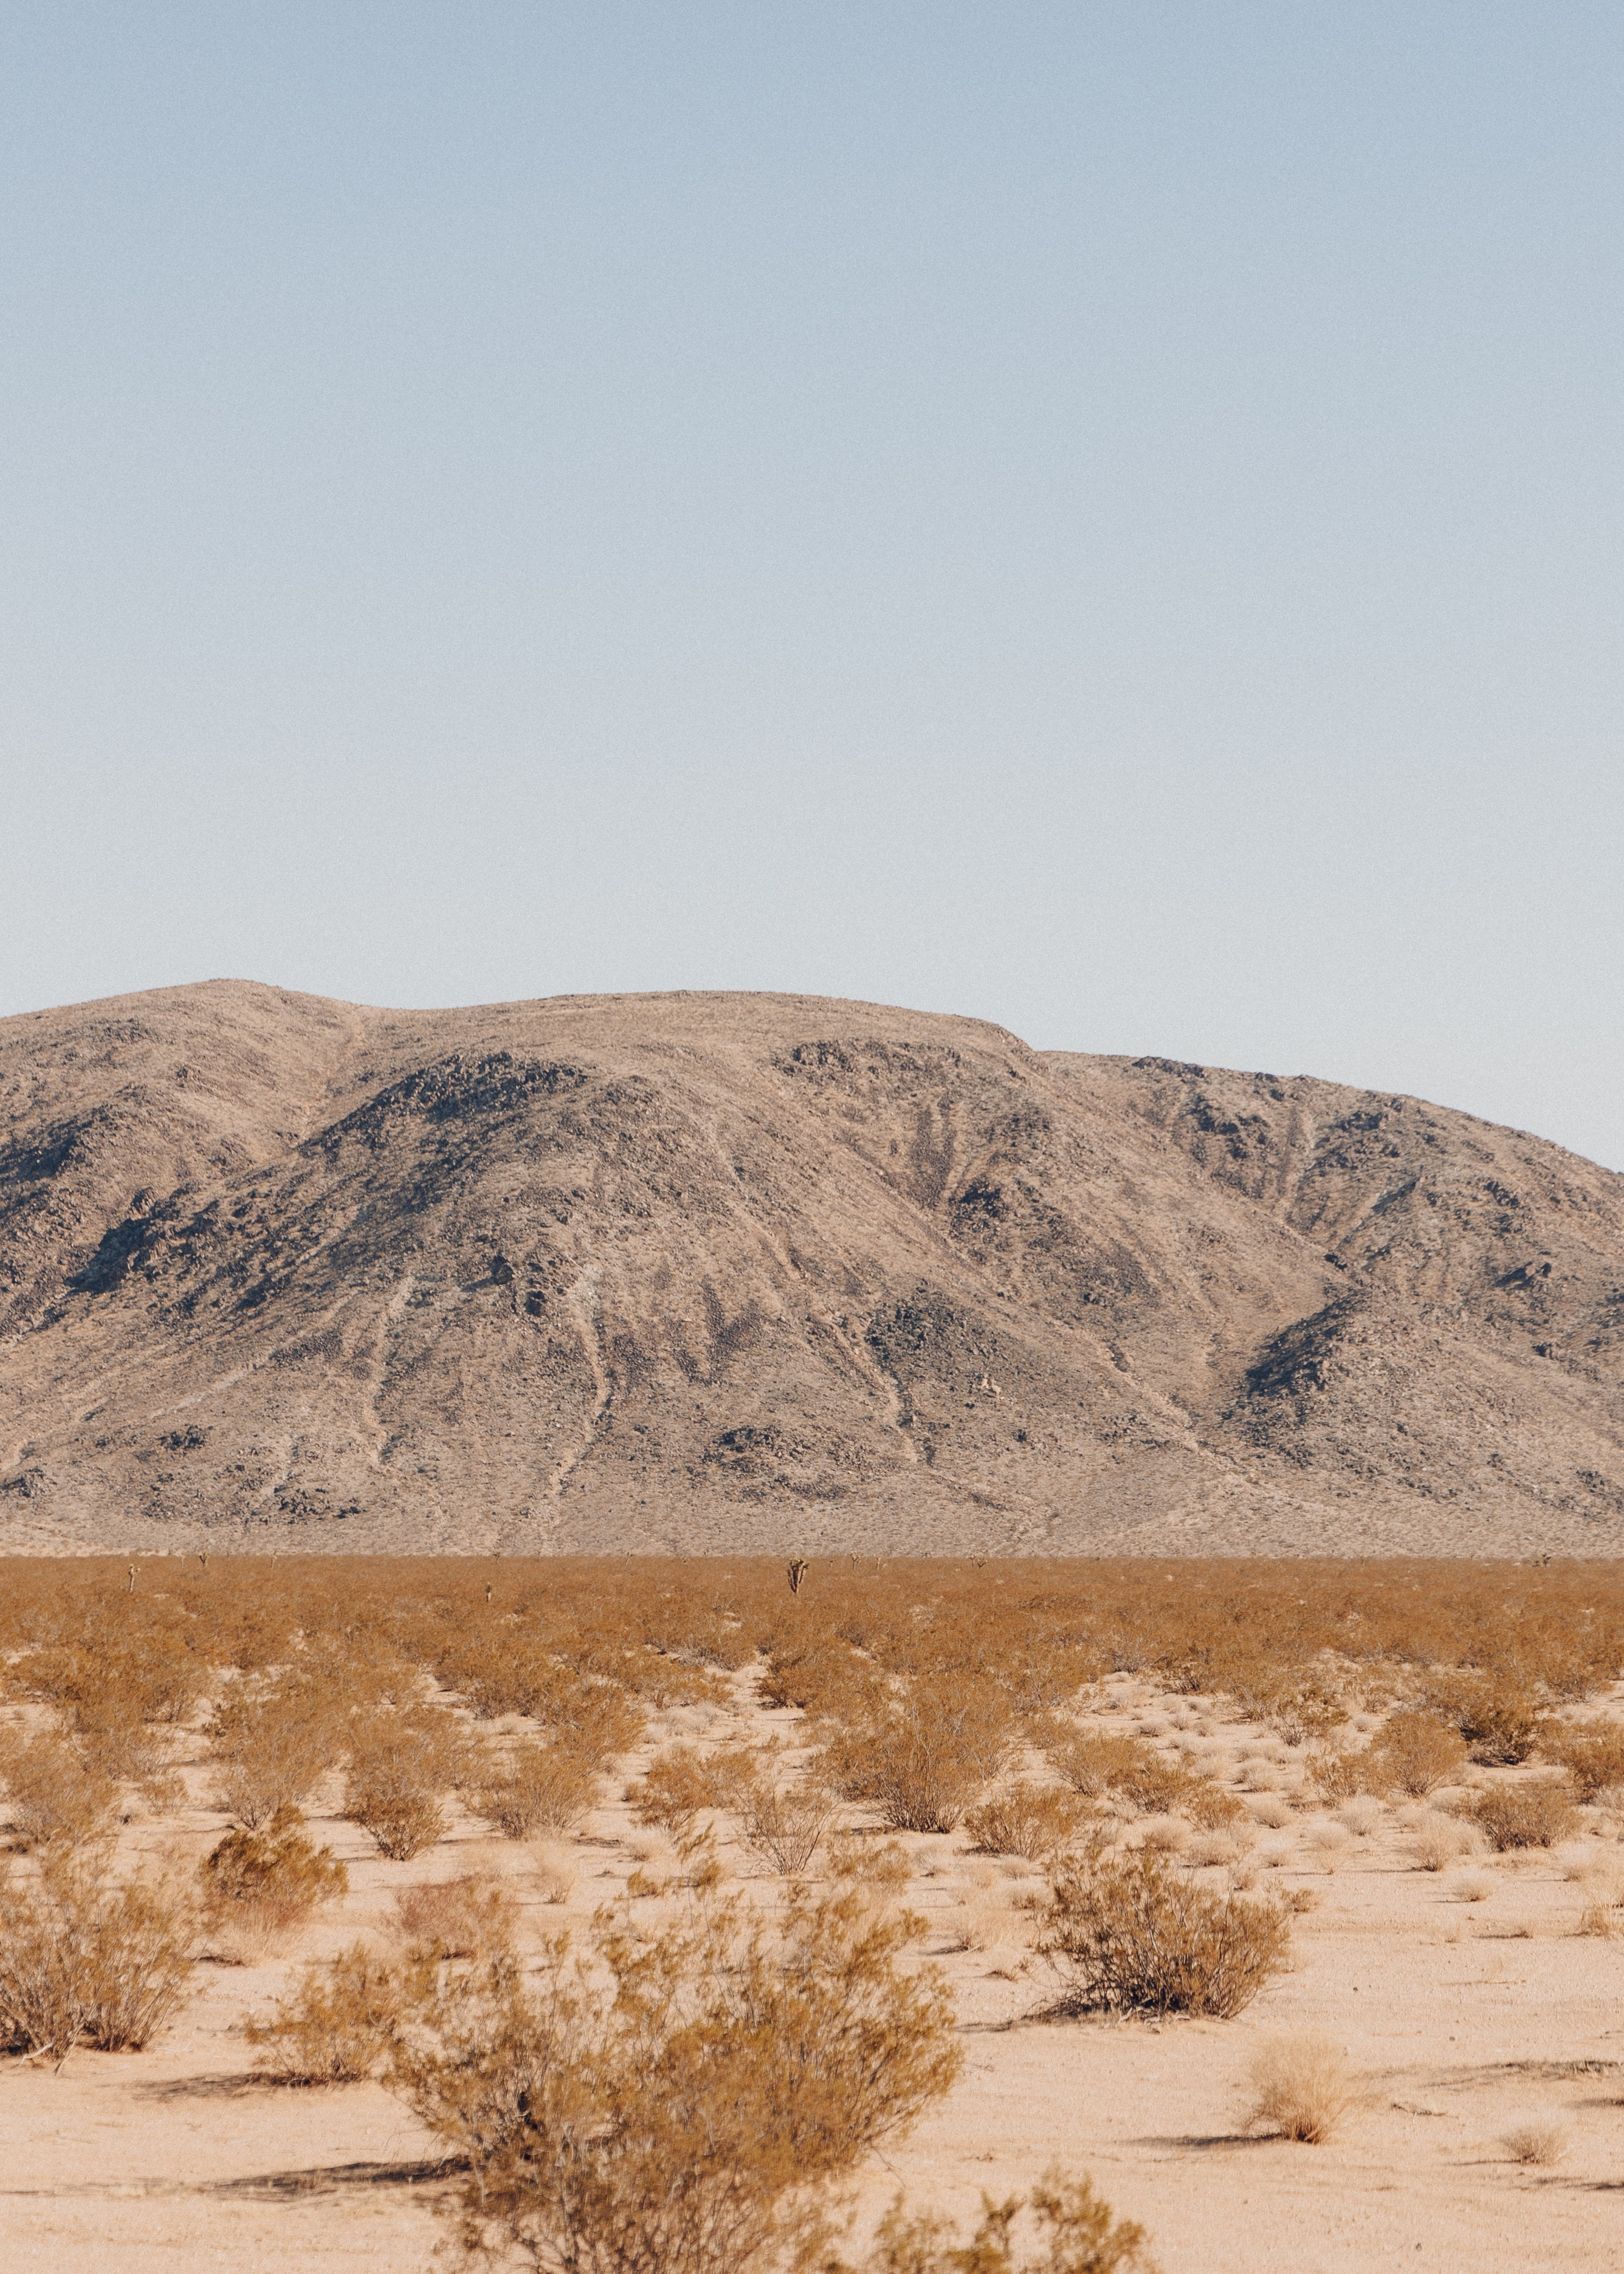 Picture of a desert mountain